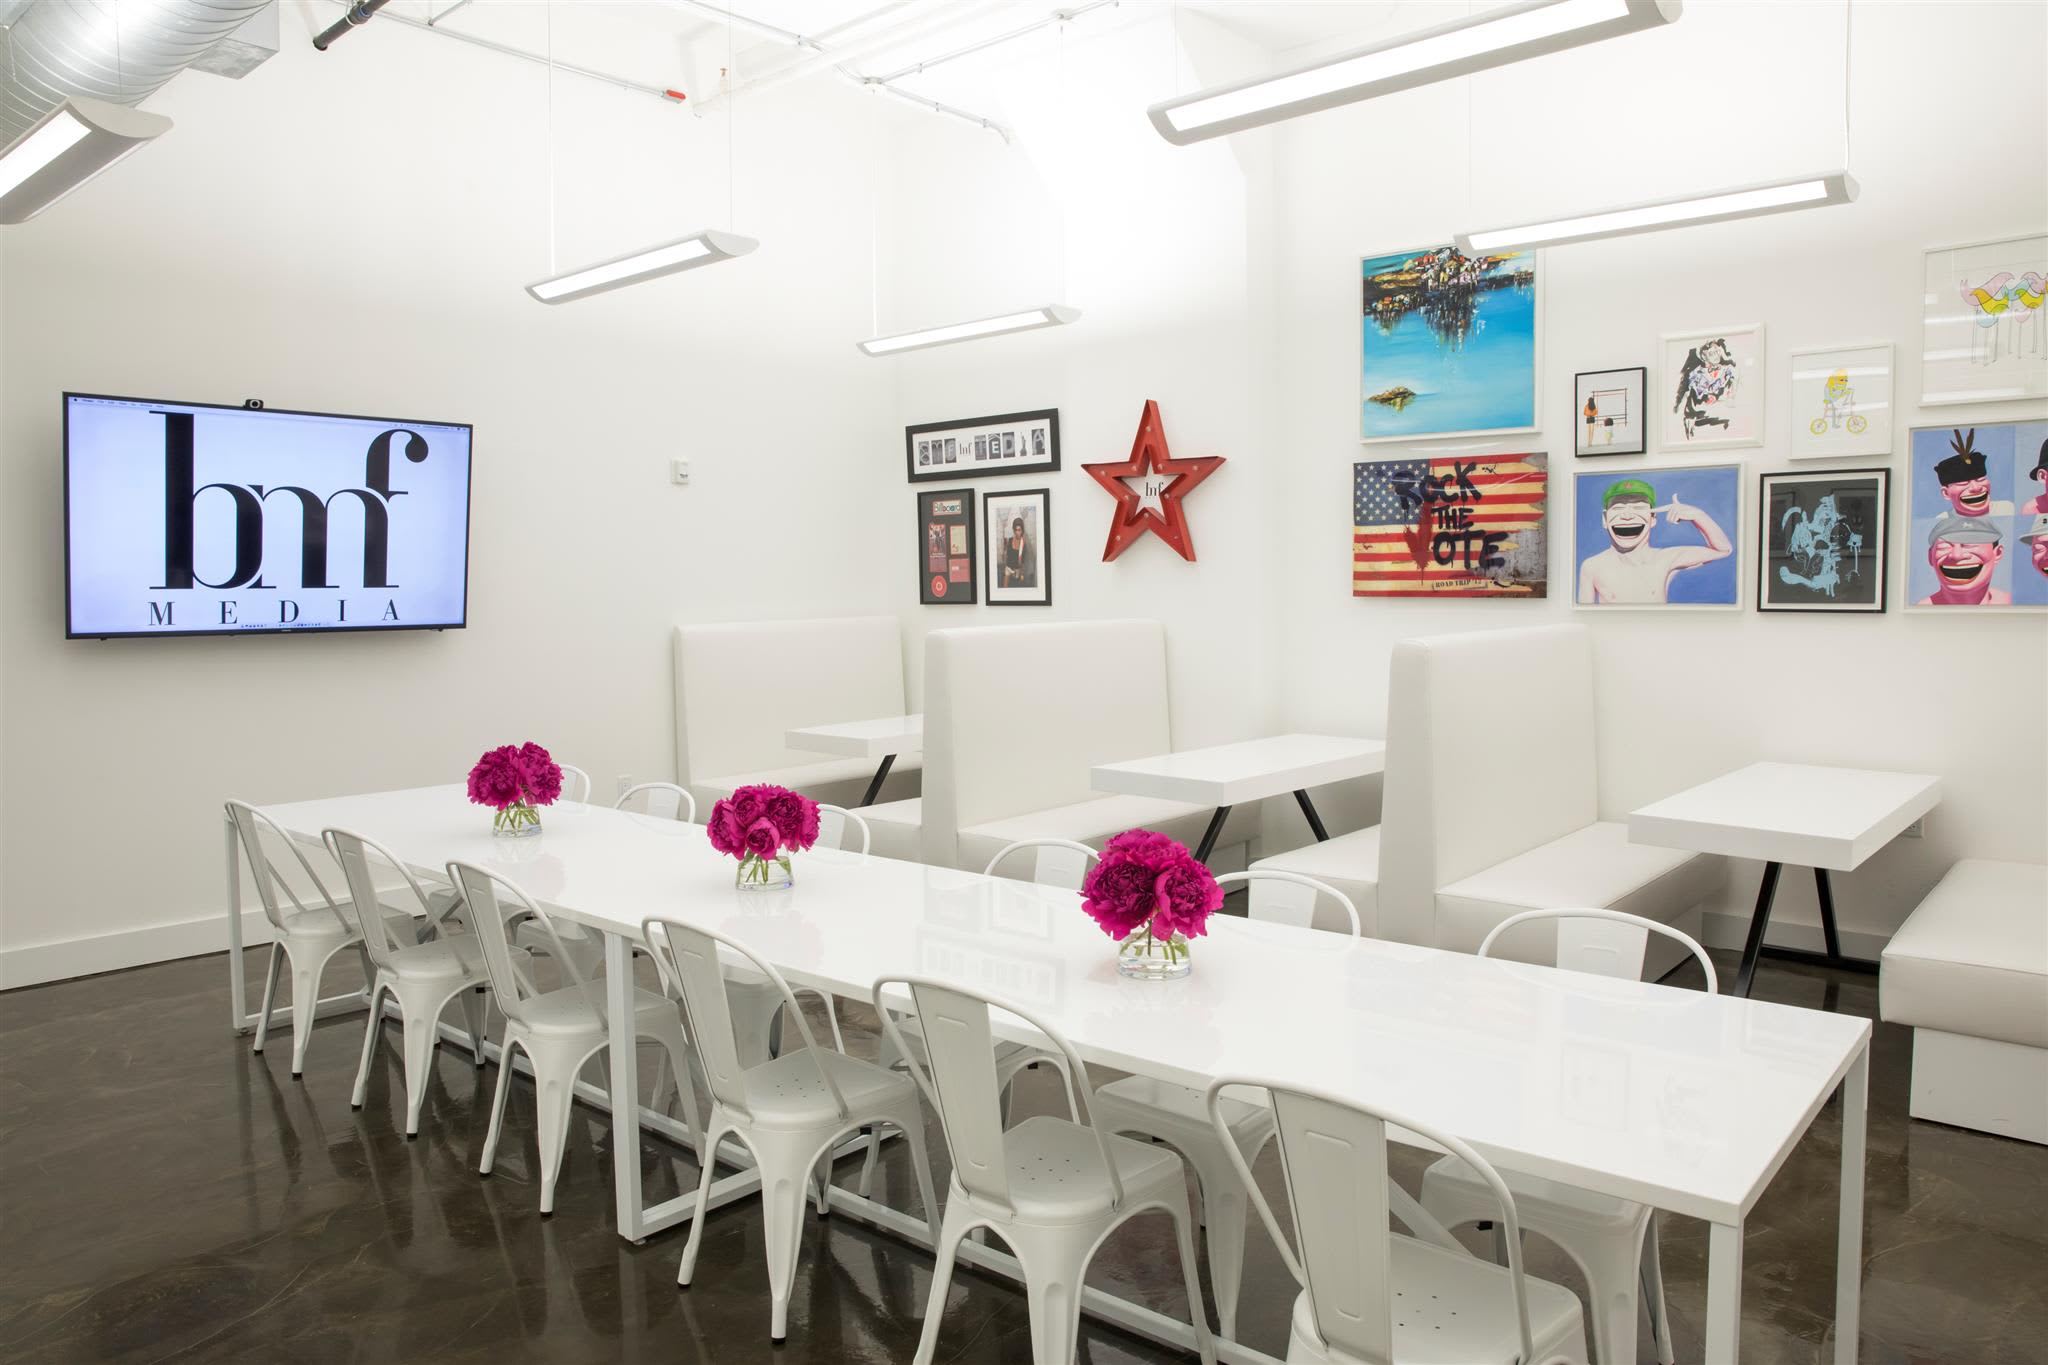 Office envy: a look inside bmf medias new york city offices